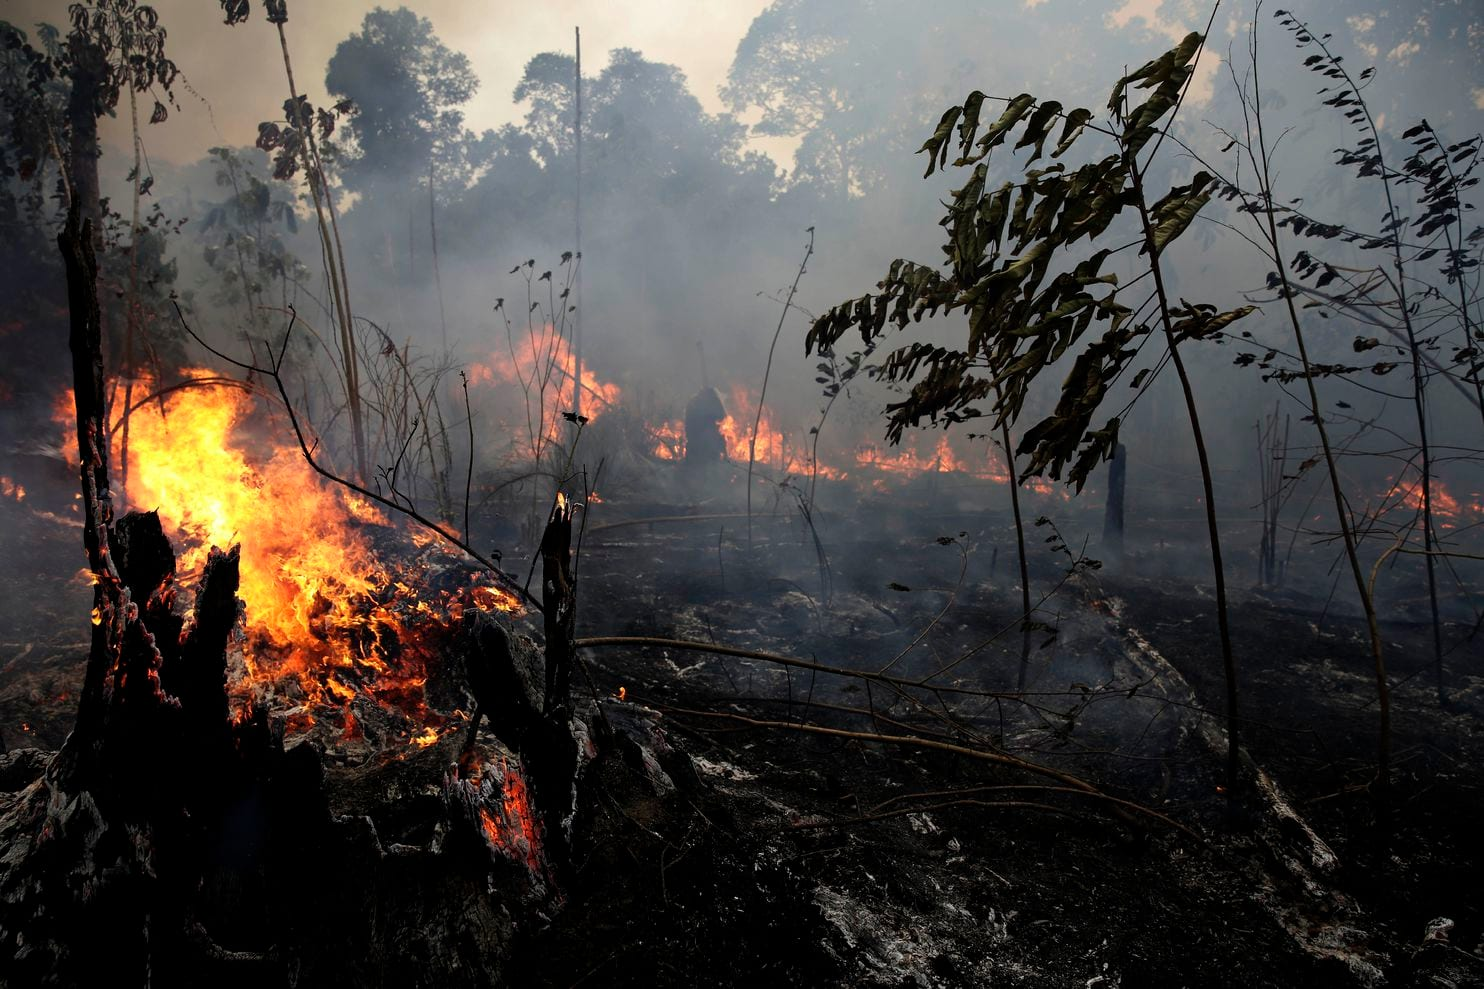 Fires burn and destroy trees in the Brazilian Amazon Rainforest near the road to the Jacundá National Forest. The National Institute for Space Research has reported around 87,000 forest fires in Brazil during the first 8 months of 2019. NASA confirmed this and says this has been the most active year for fires in the Amazon for almost a decade.